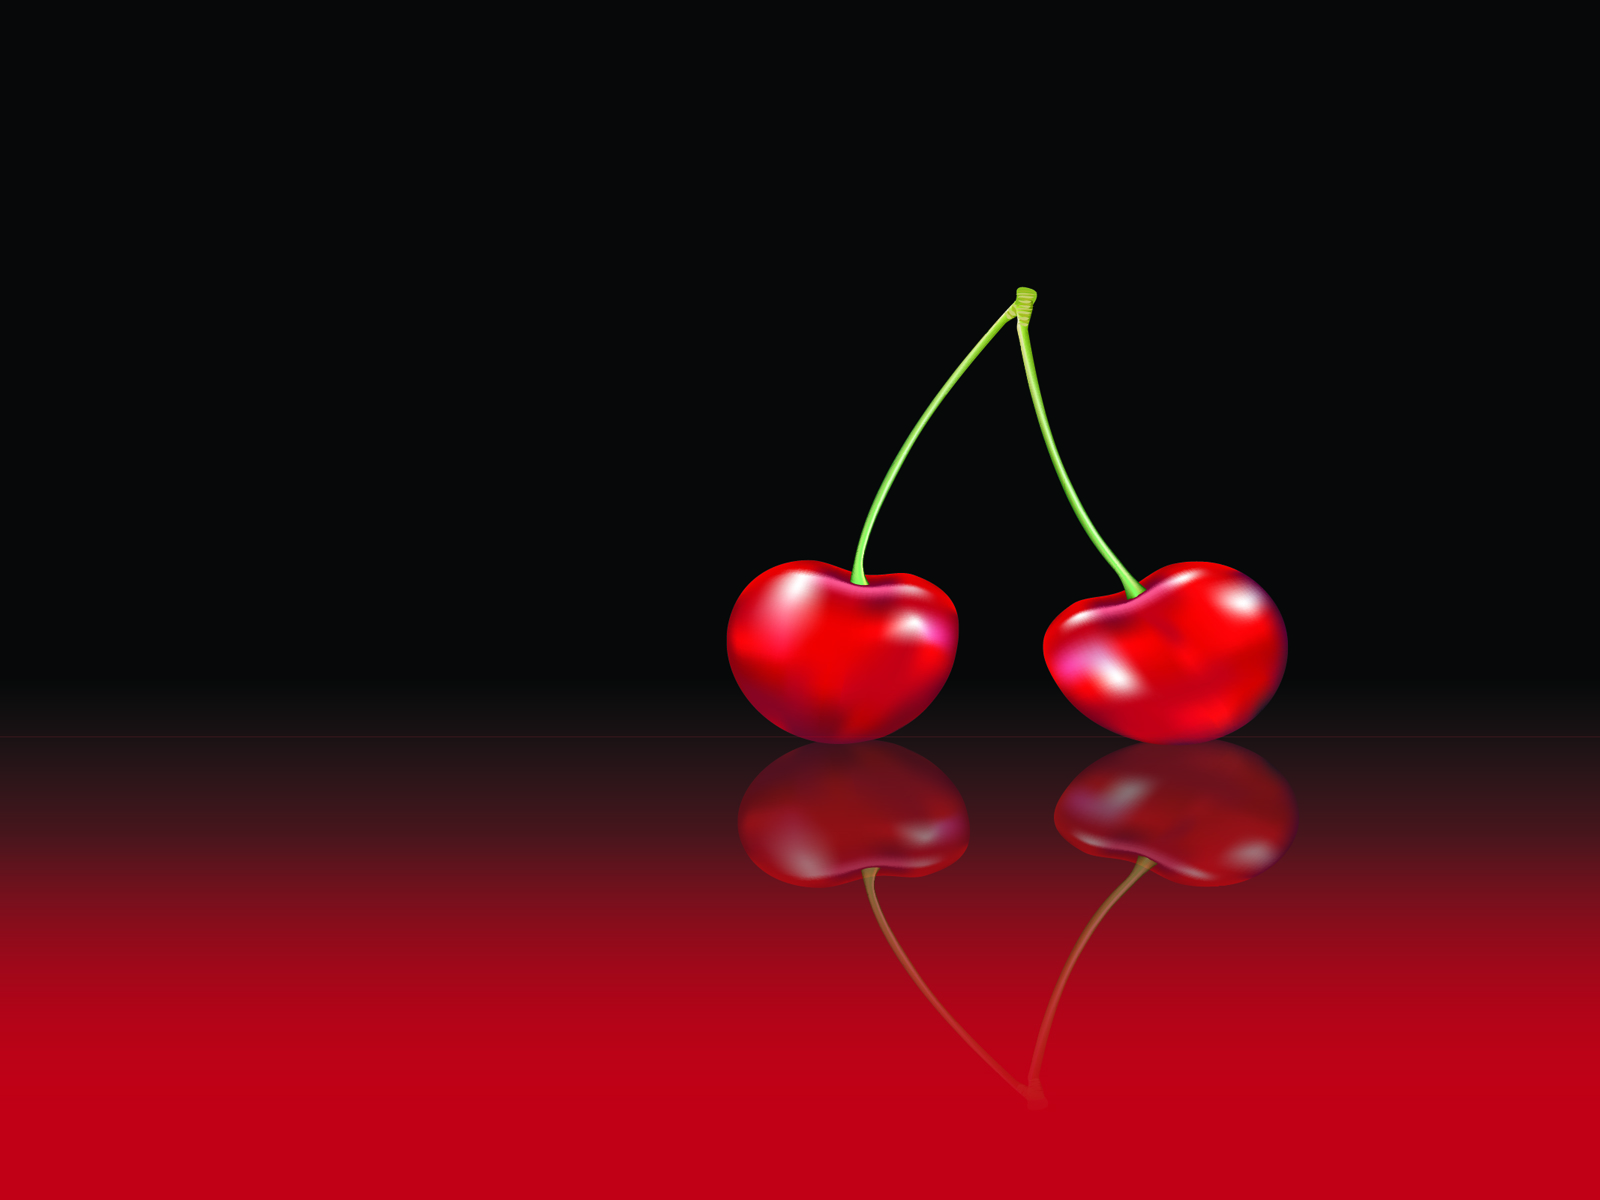 Red cherries foods PPT Backgrounds - Black, Foods & Drinks ...